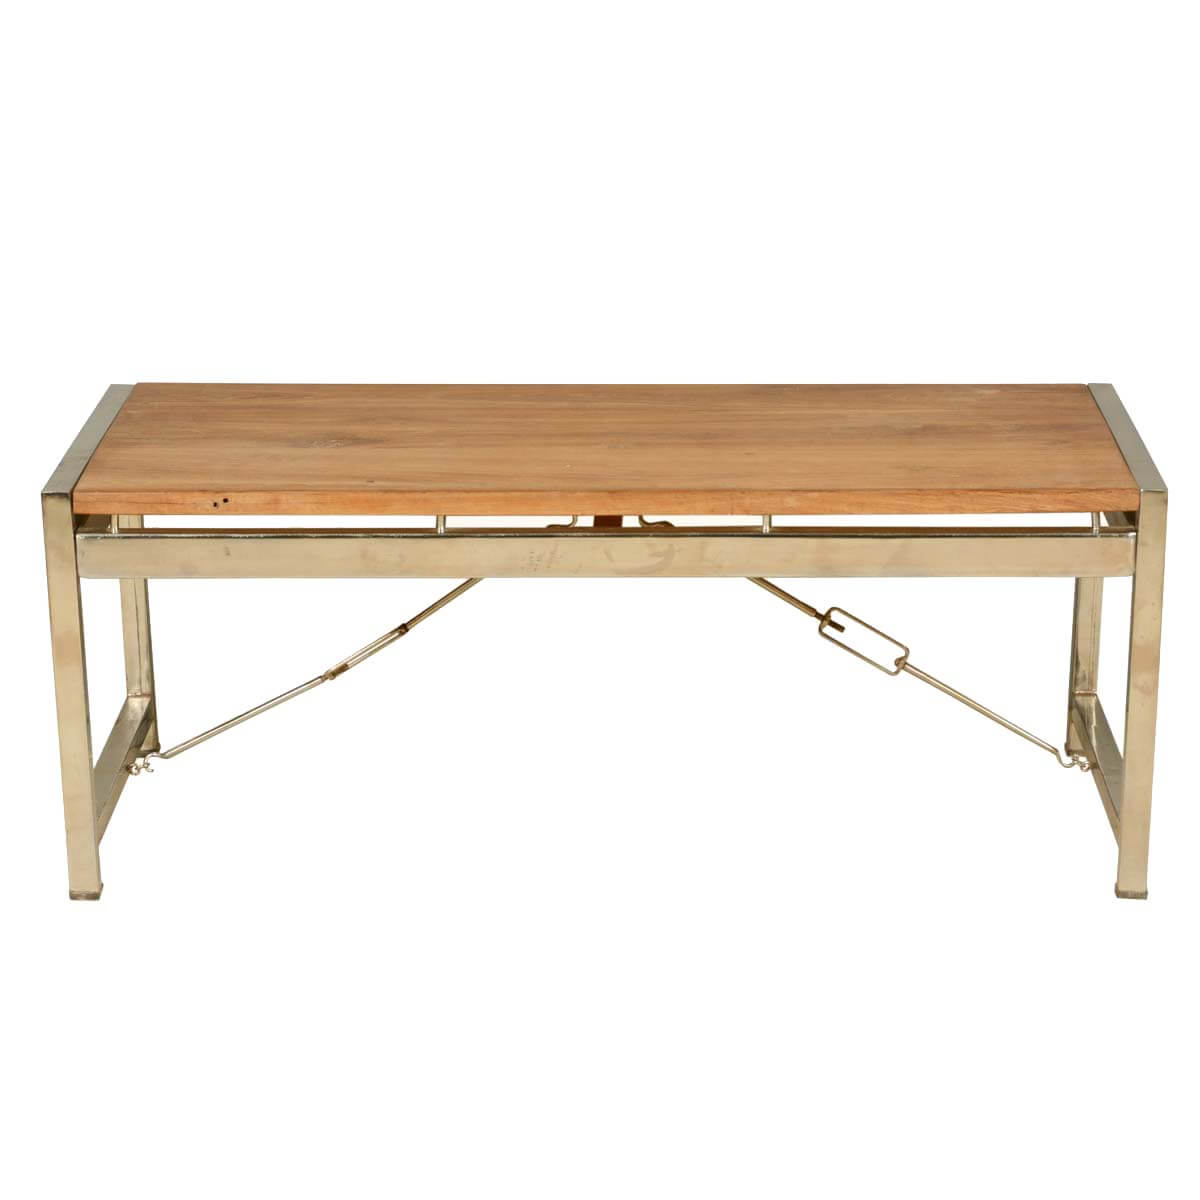 Modern Industrial Fusion Solid Wood Iron Rustic Coffee Table